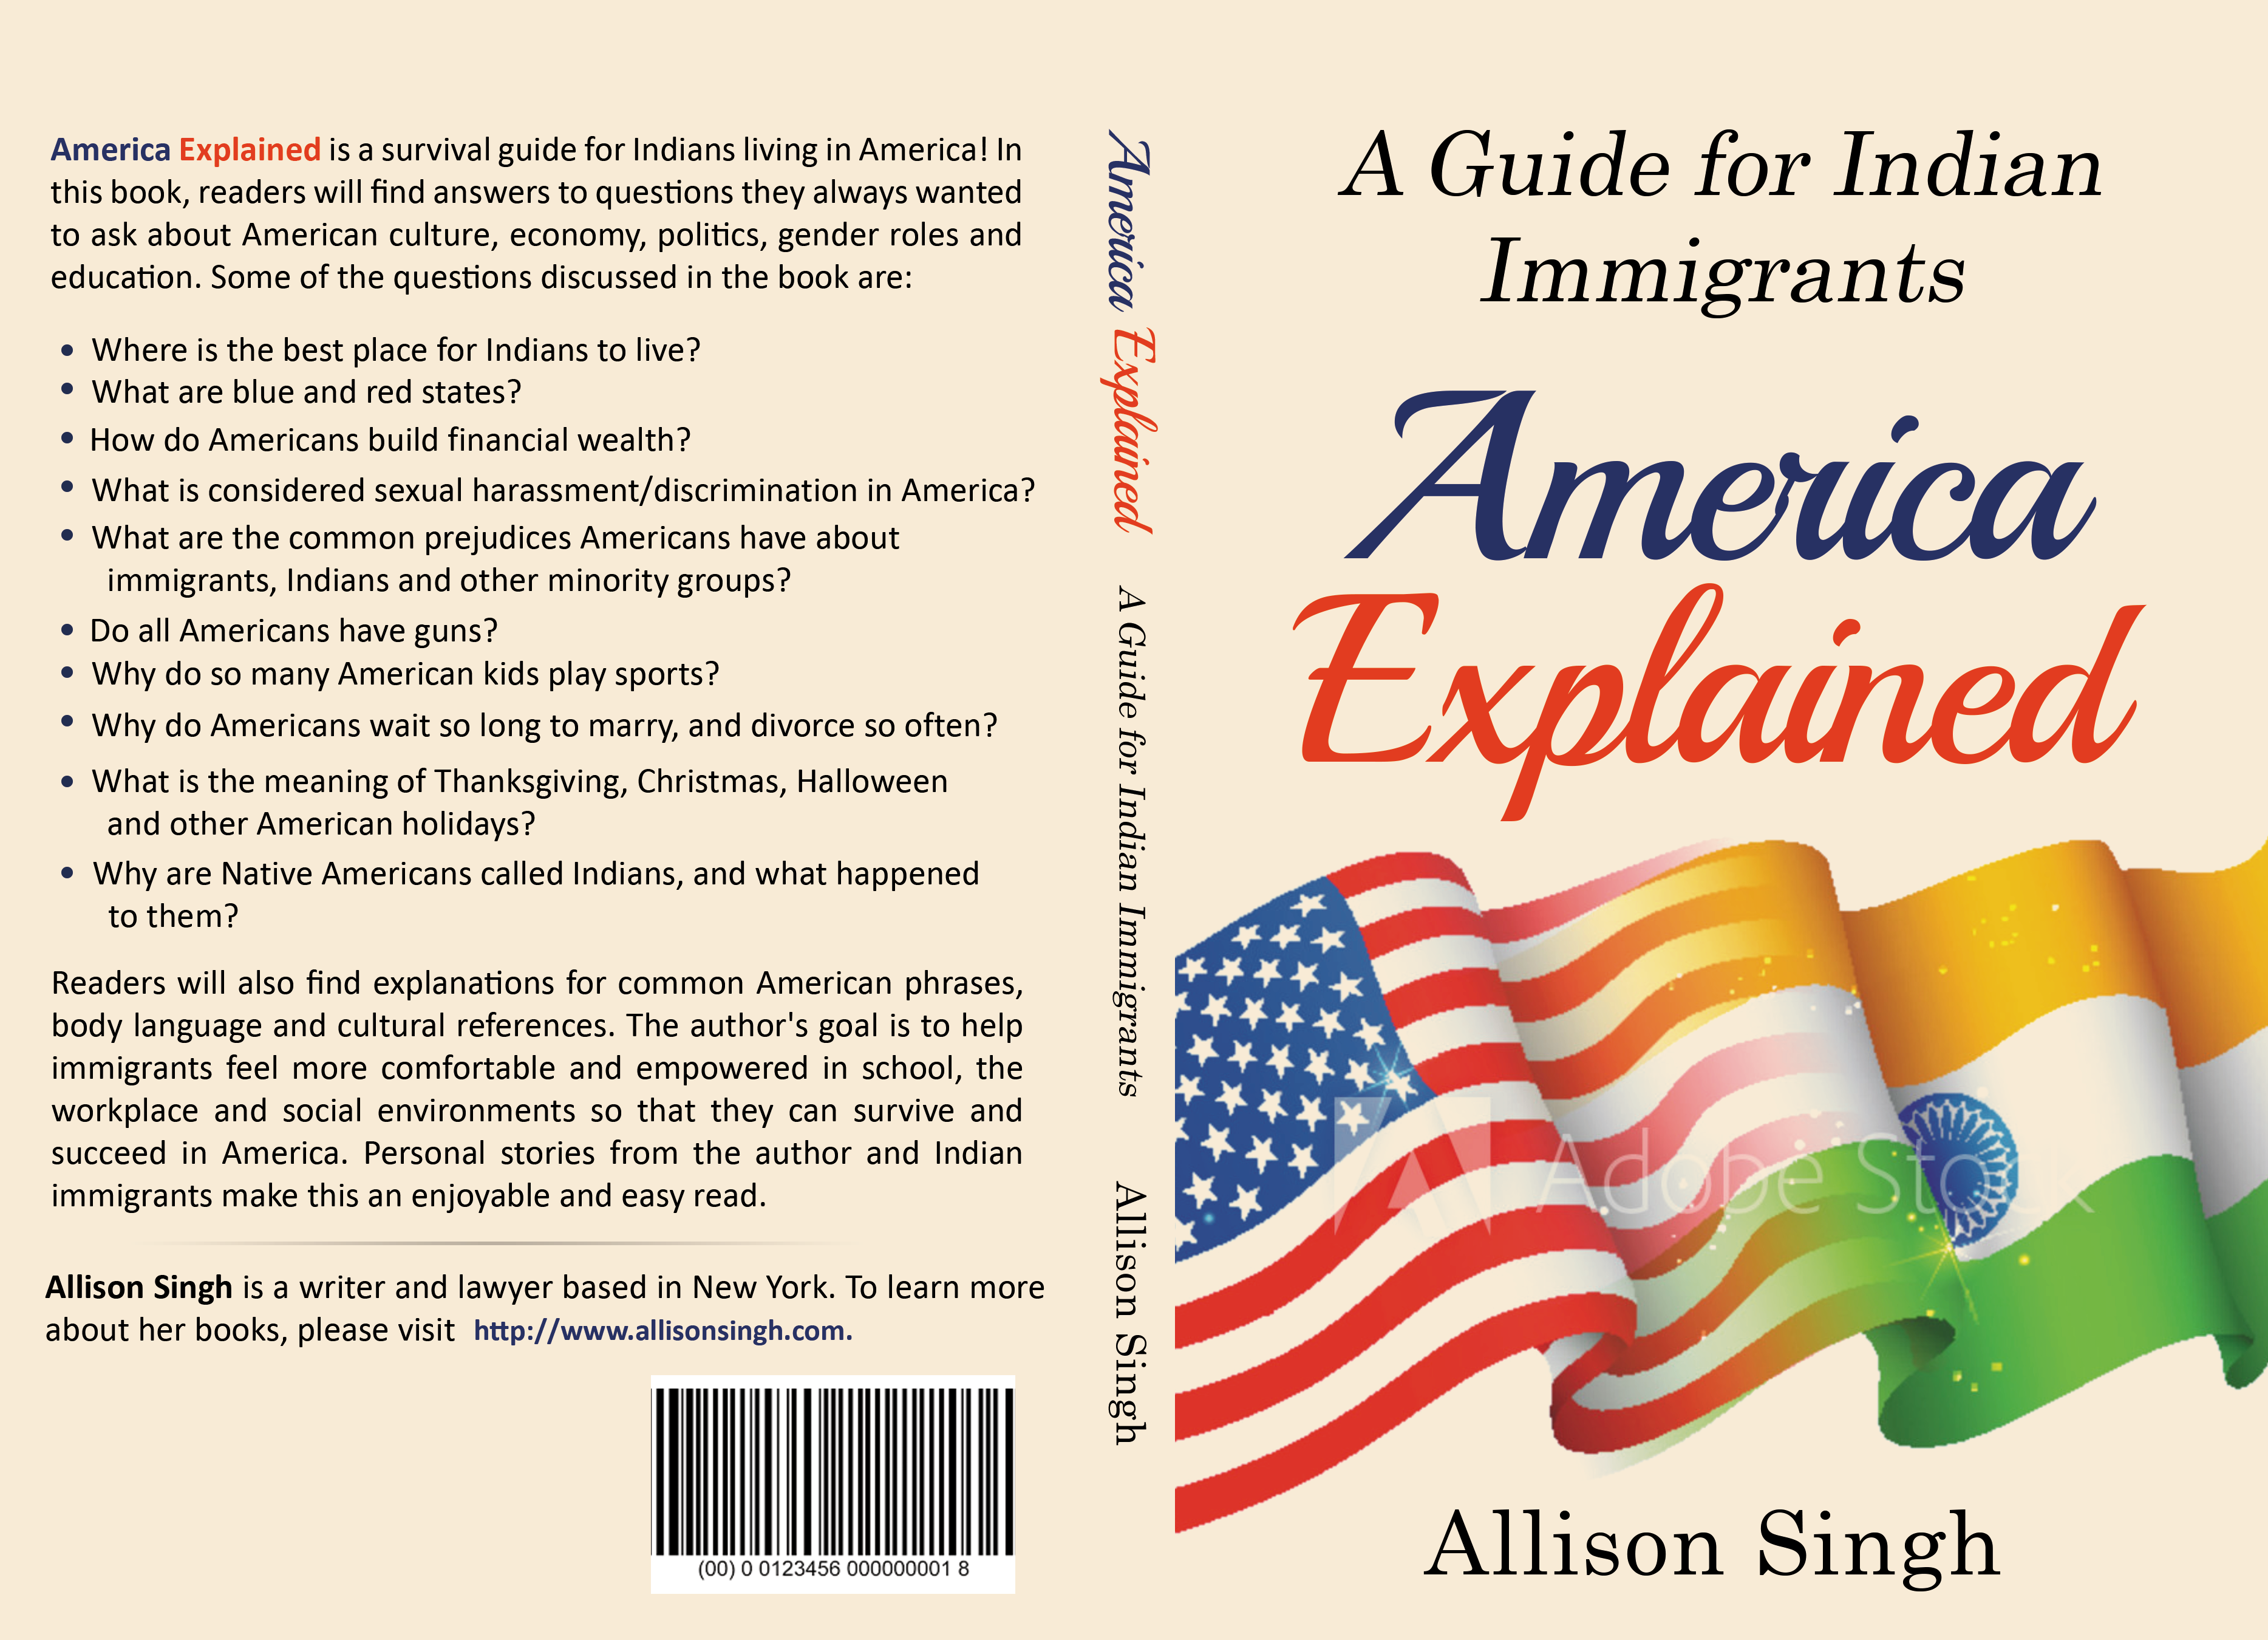 Design a book cover blending Indian and American elements for guide for immigrants